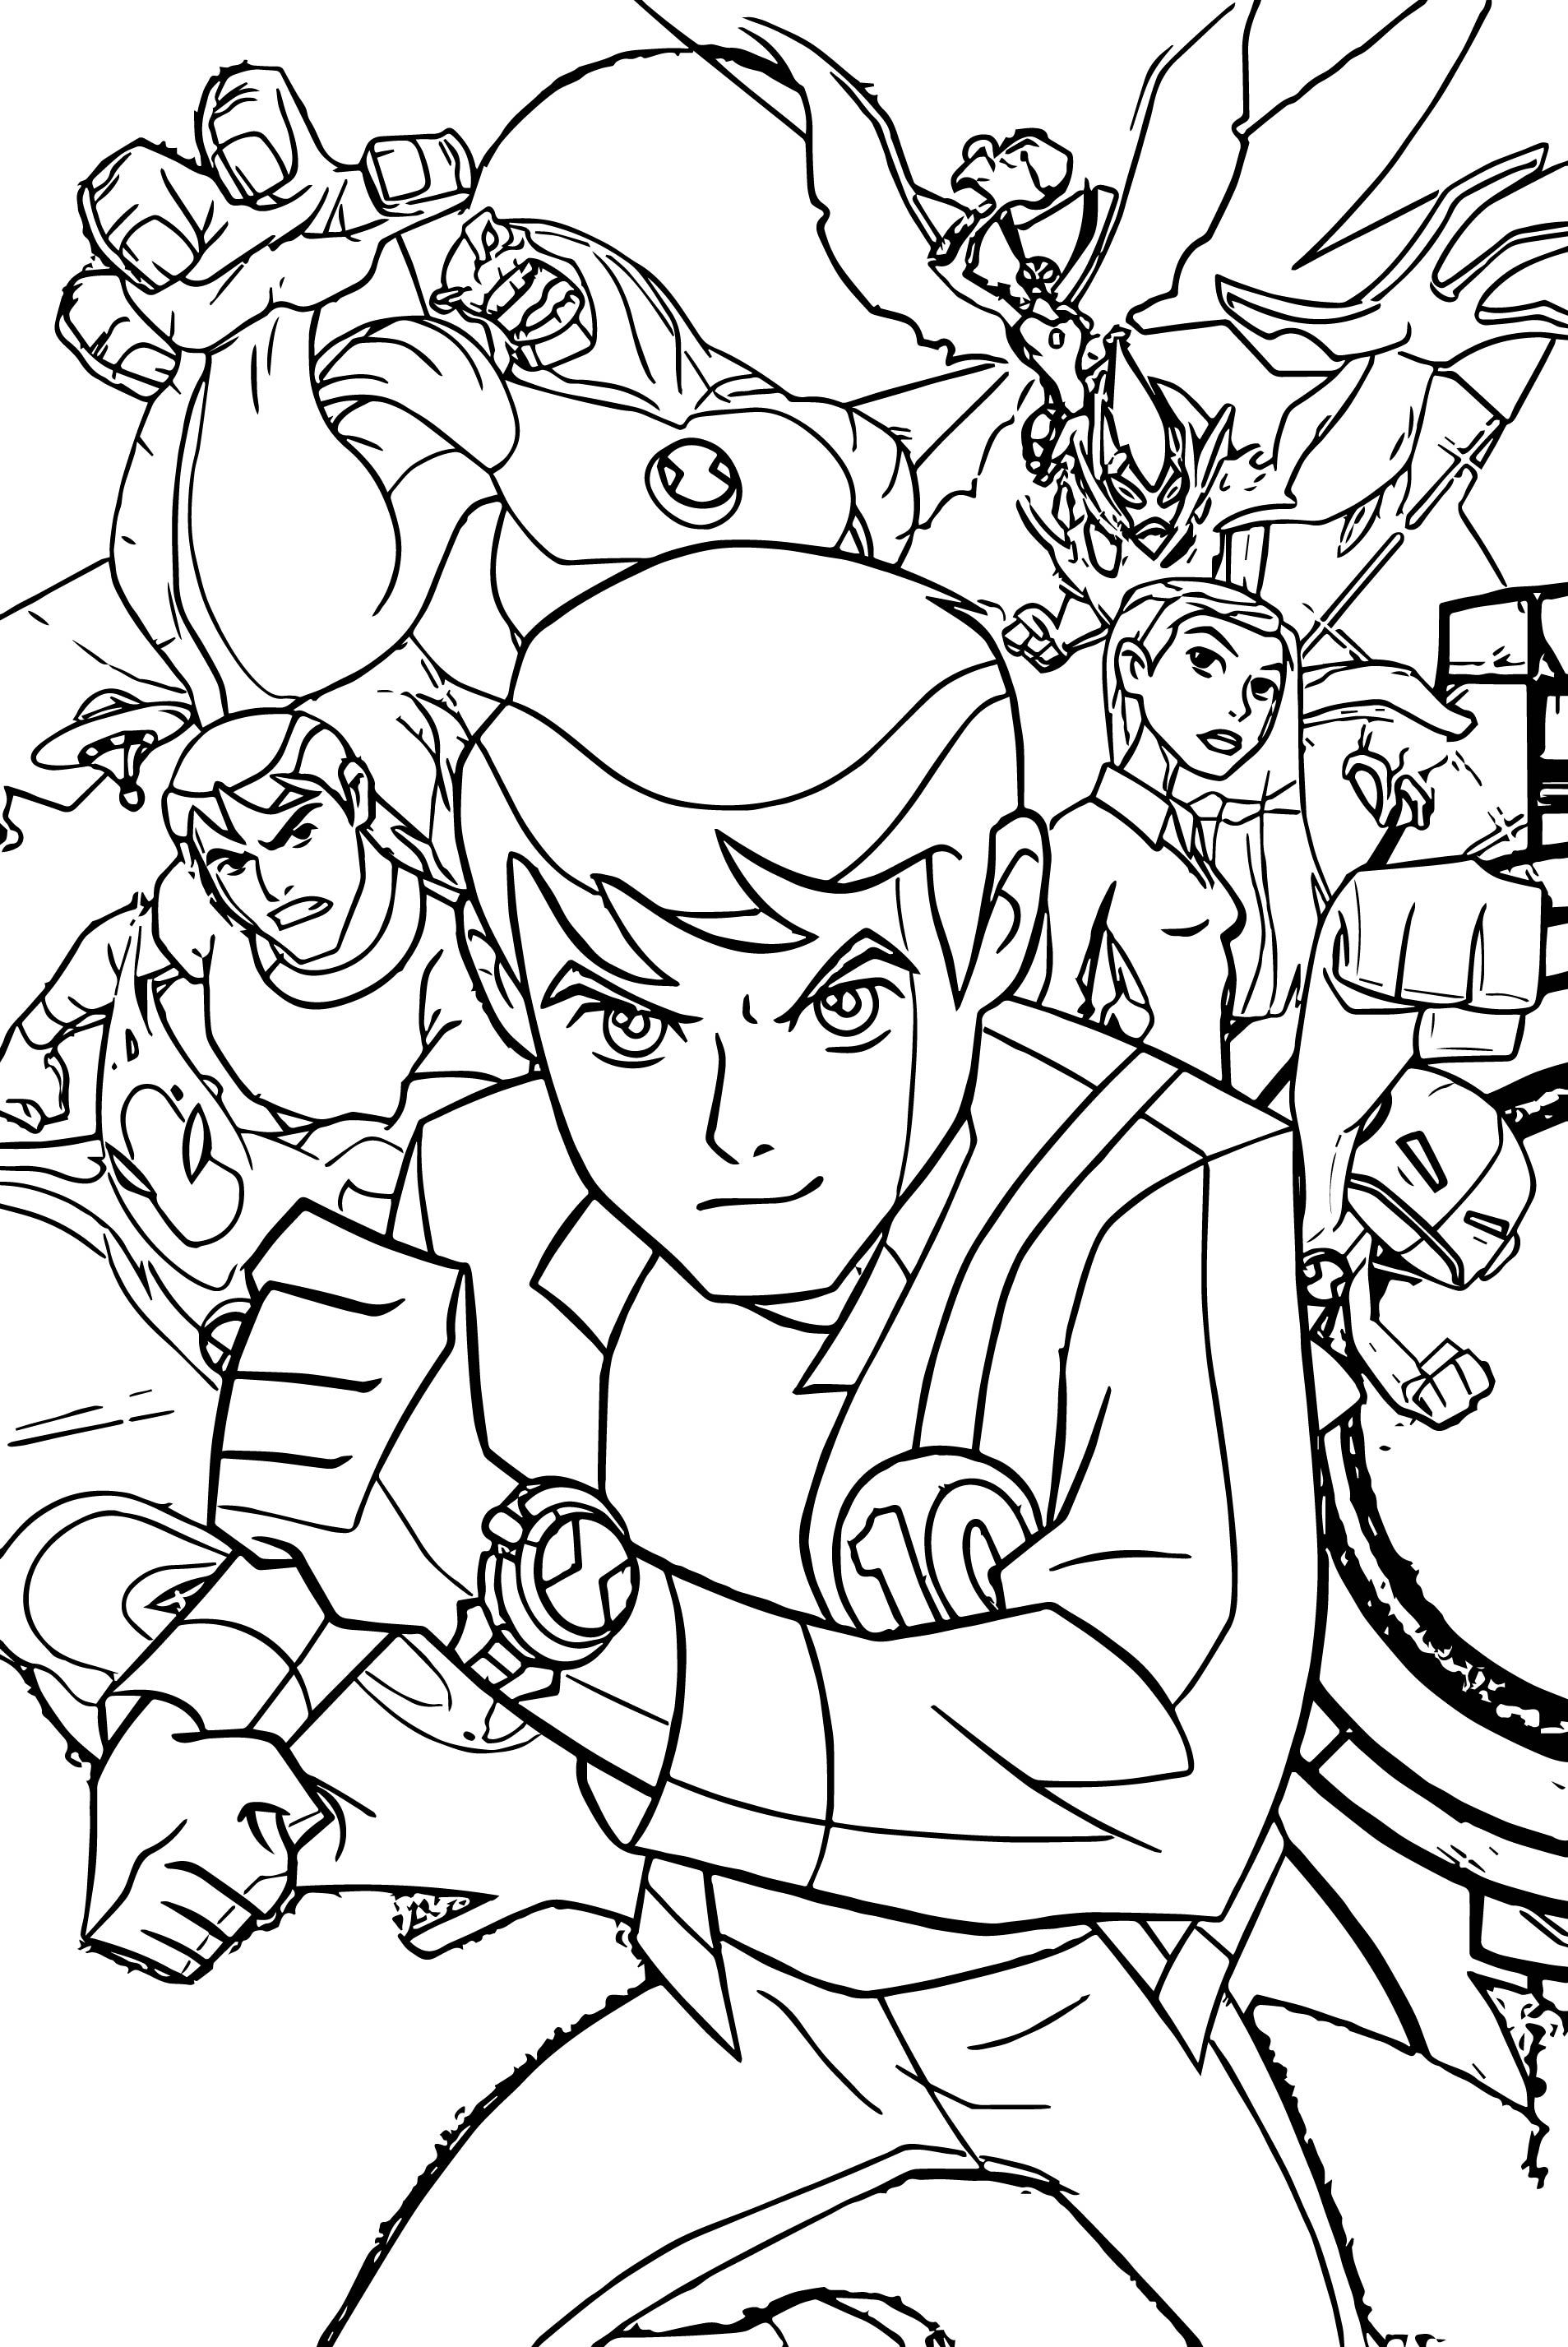 Awesome Benten Ben10 Alien Force Group Poster Coloring Page Ben 10